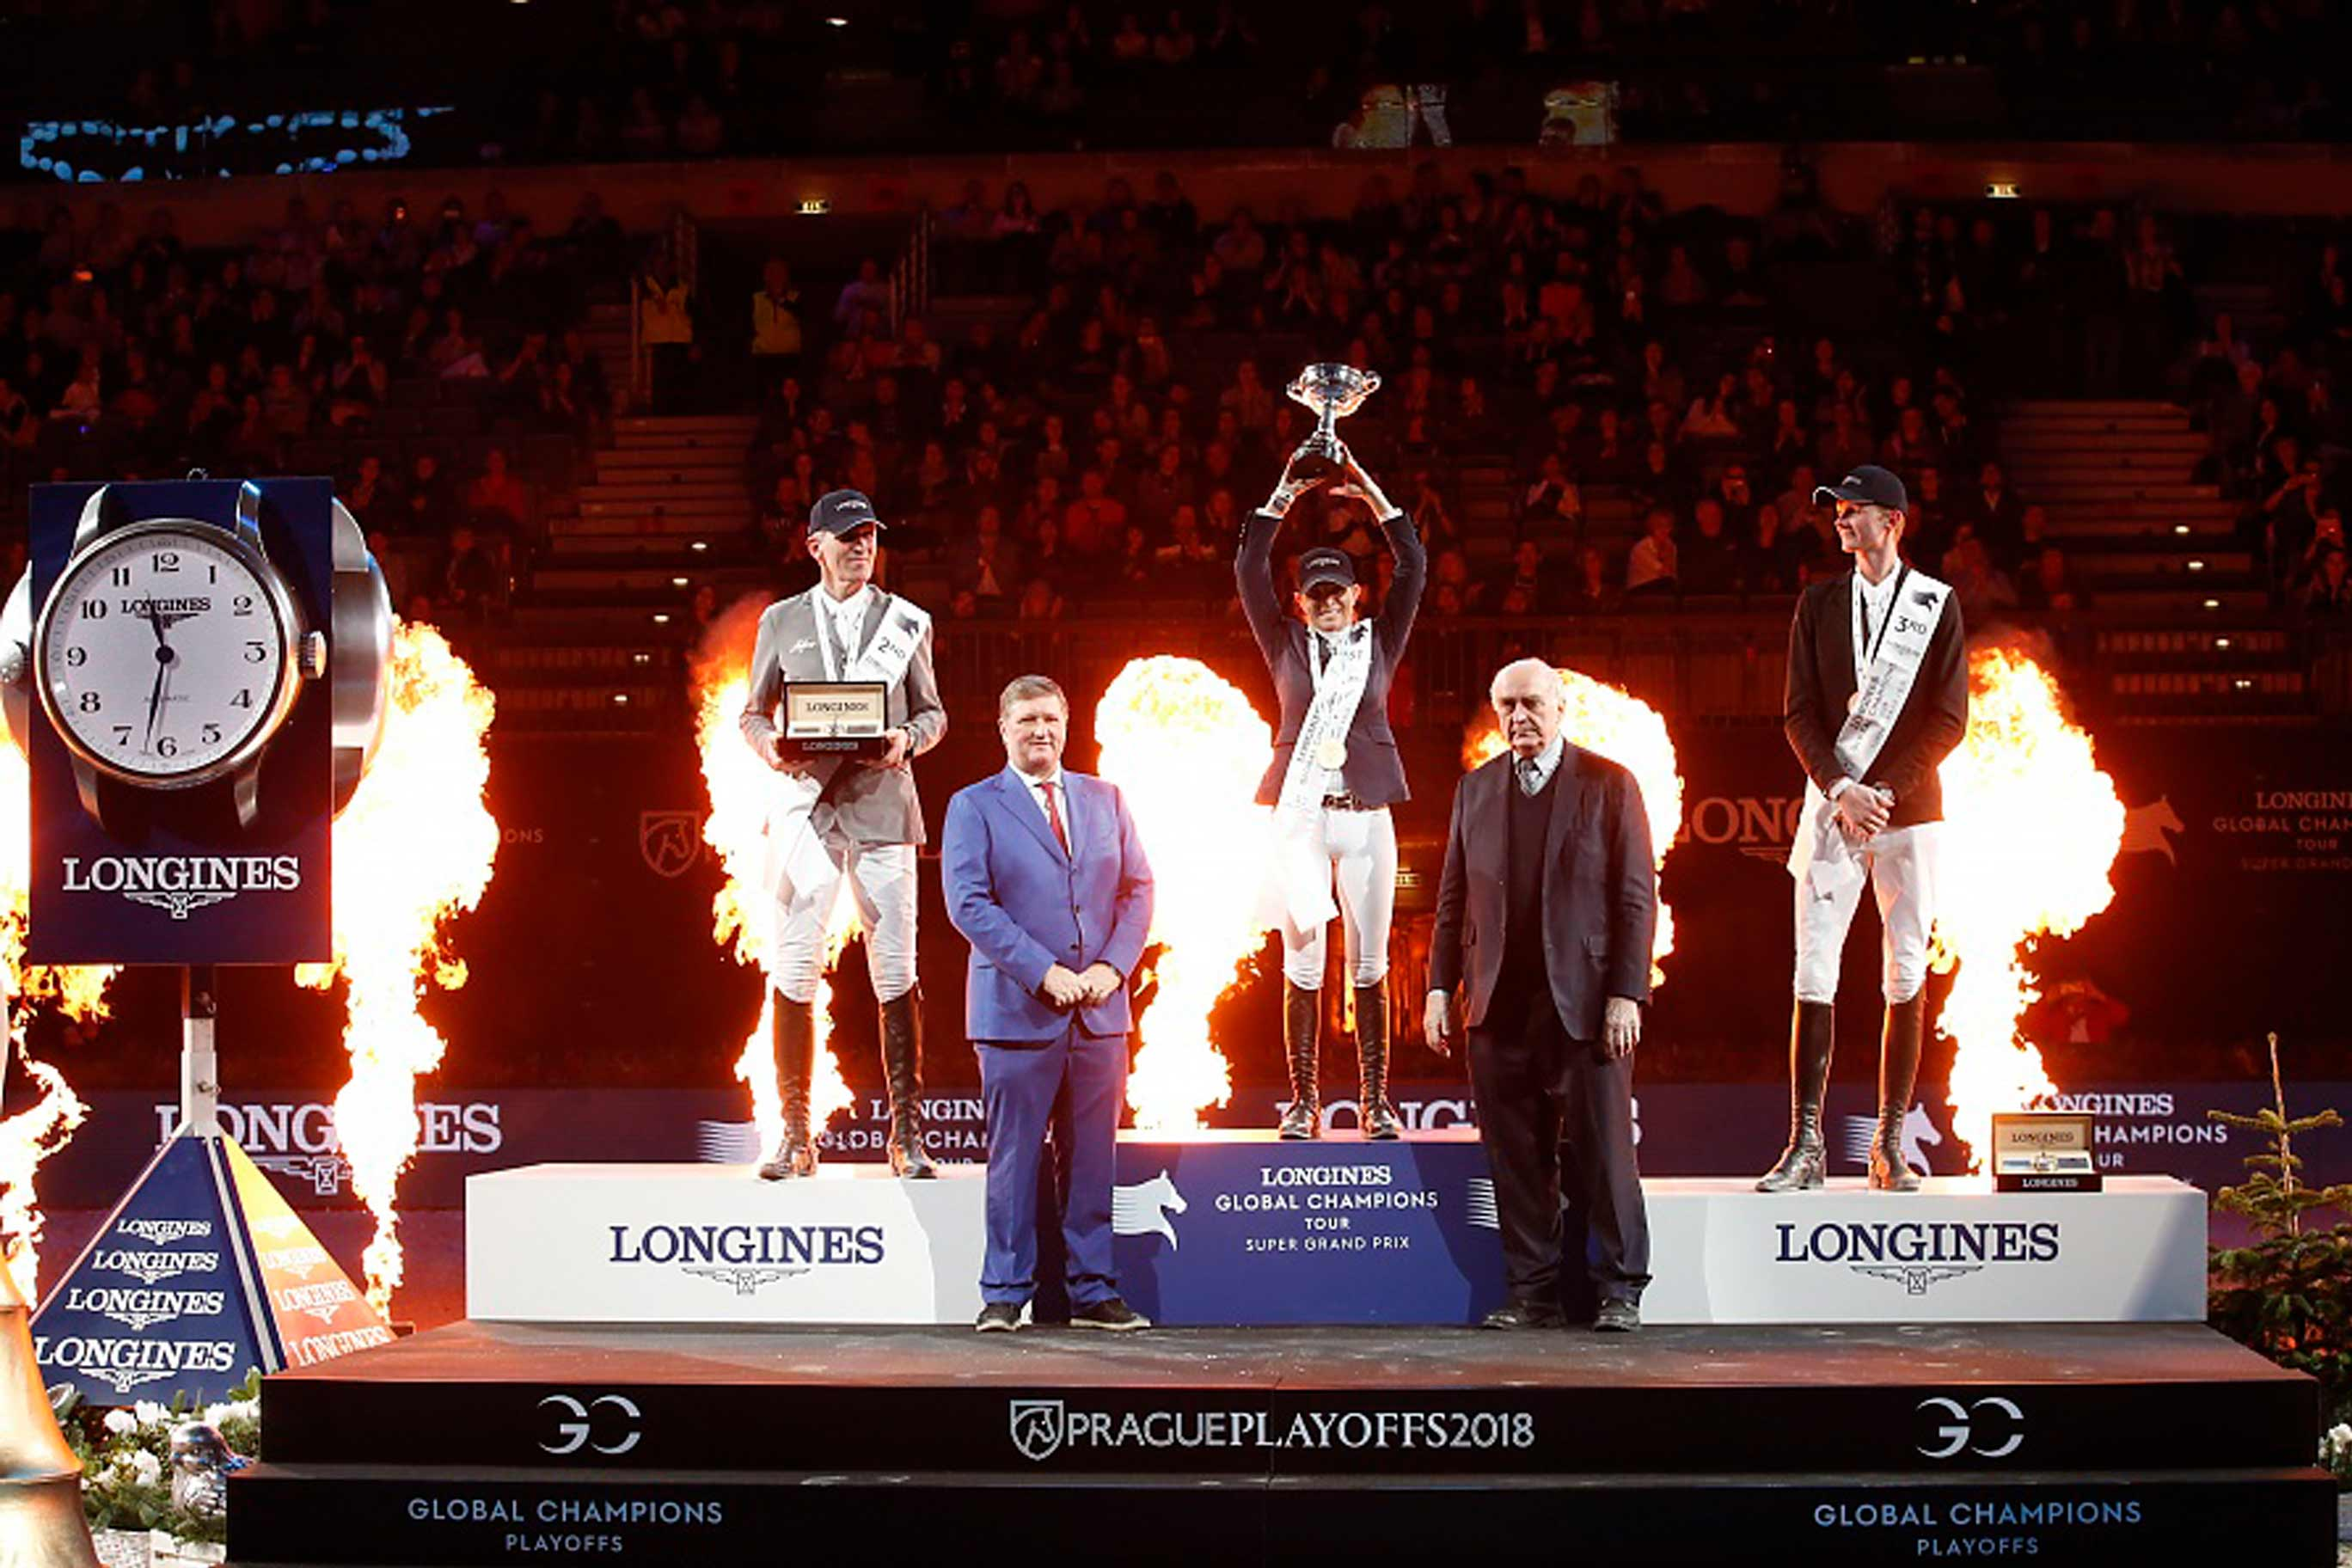 Edwina Tops-Alexander – LGCT Prague Playoff Super Grand Prix